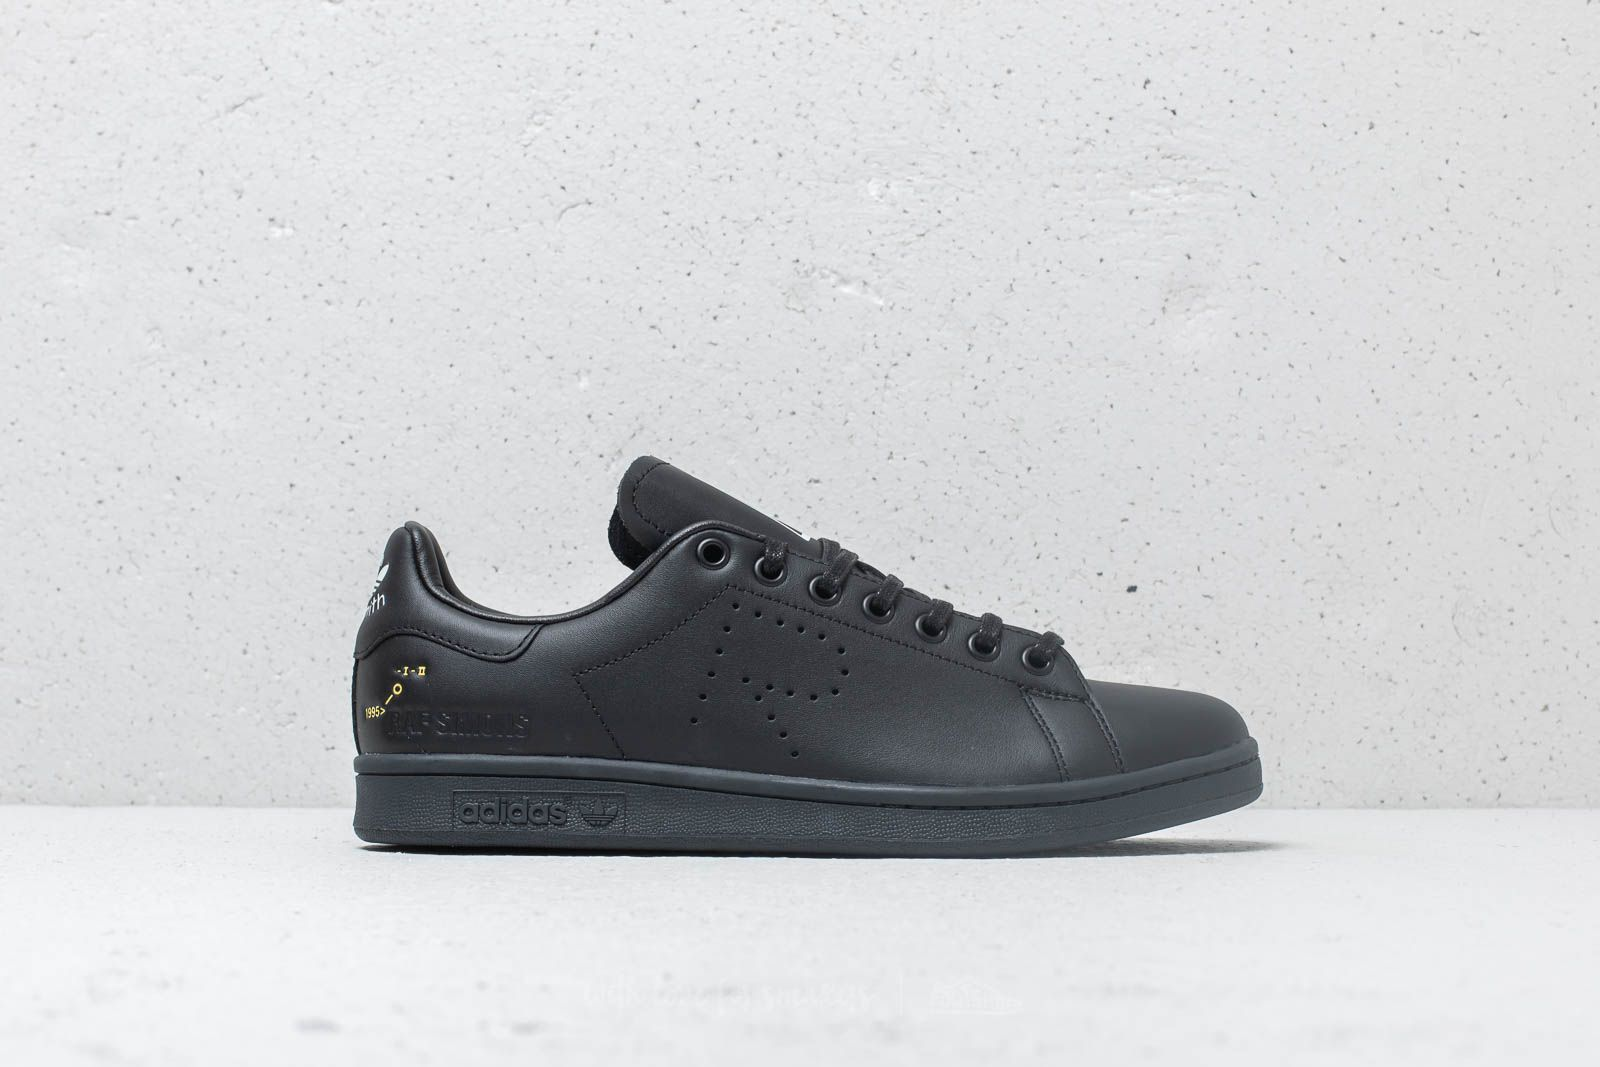 edbb4bab5d2 adidas x Raf Simons Stan Smith Core Black  Dgh Solid Grey  Cream White at